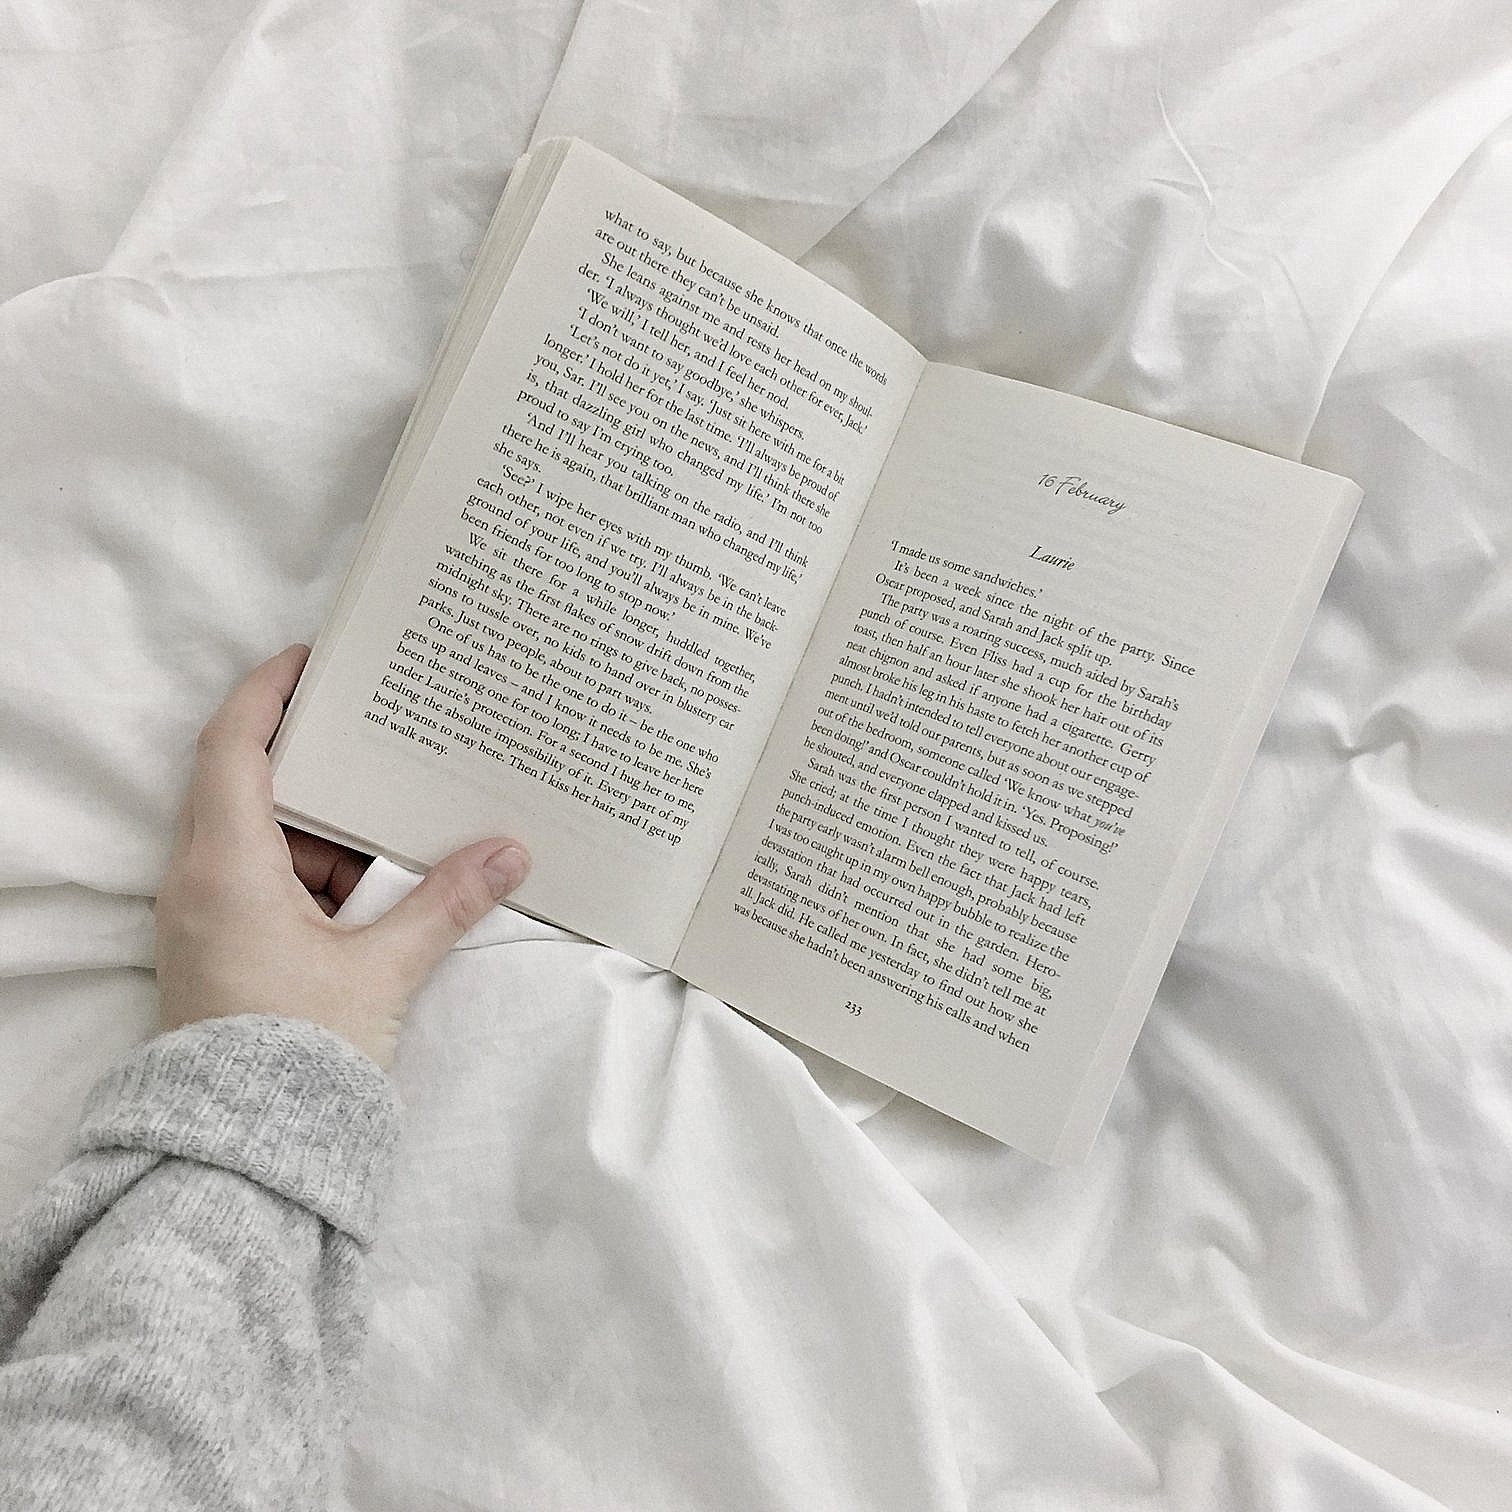 How to meditate in bed: open book on a bed